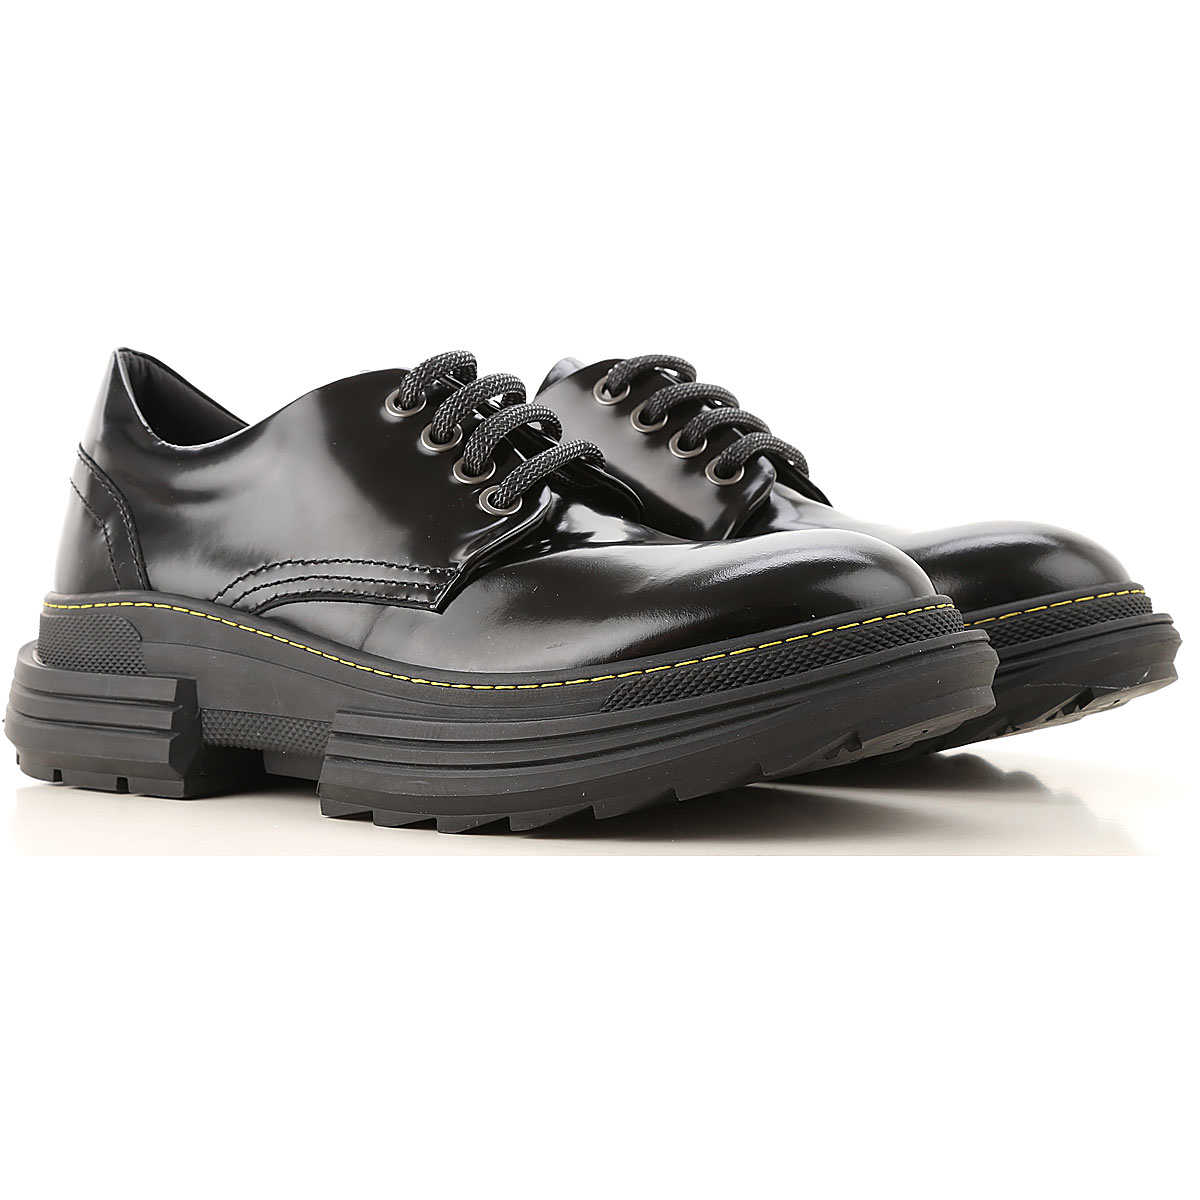 Beyond Lace Up Shoes for Men Oxfords 10 10.5 6.5 7 7.5 8 8.5 9 9.5 Derbies and Brogues UK - GOOFASH